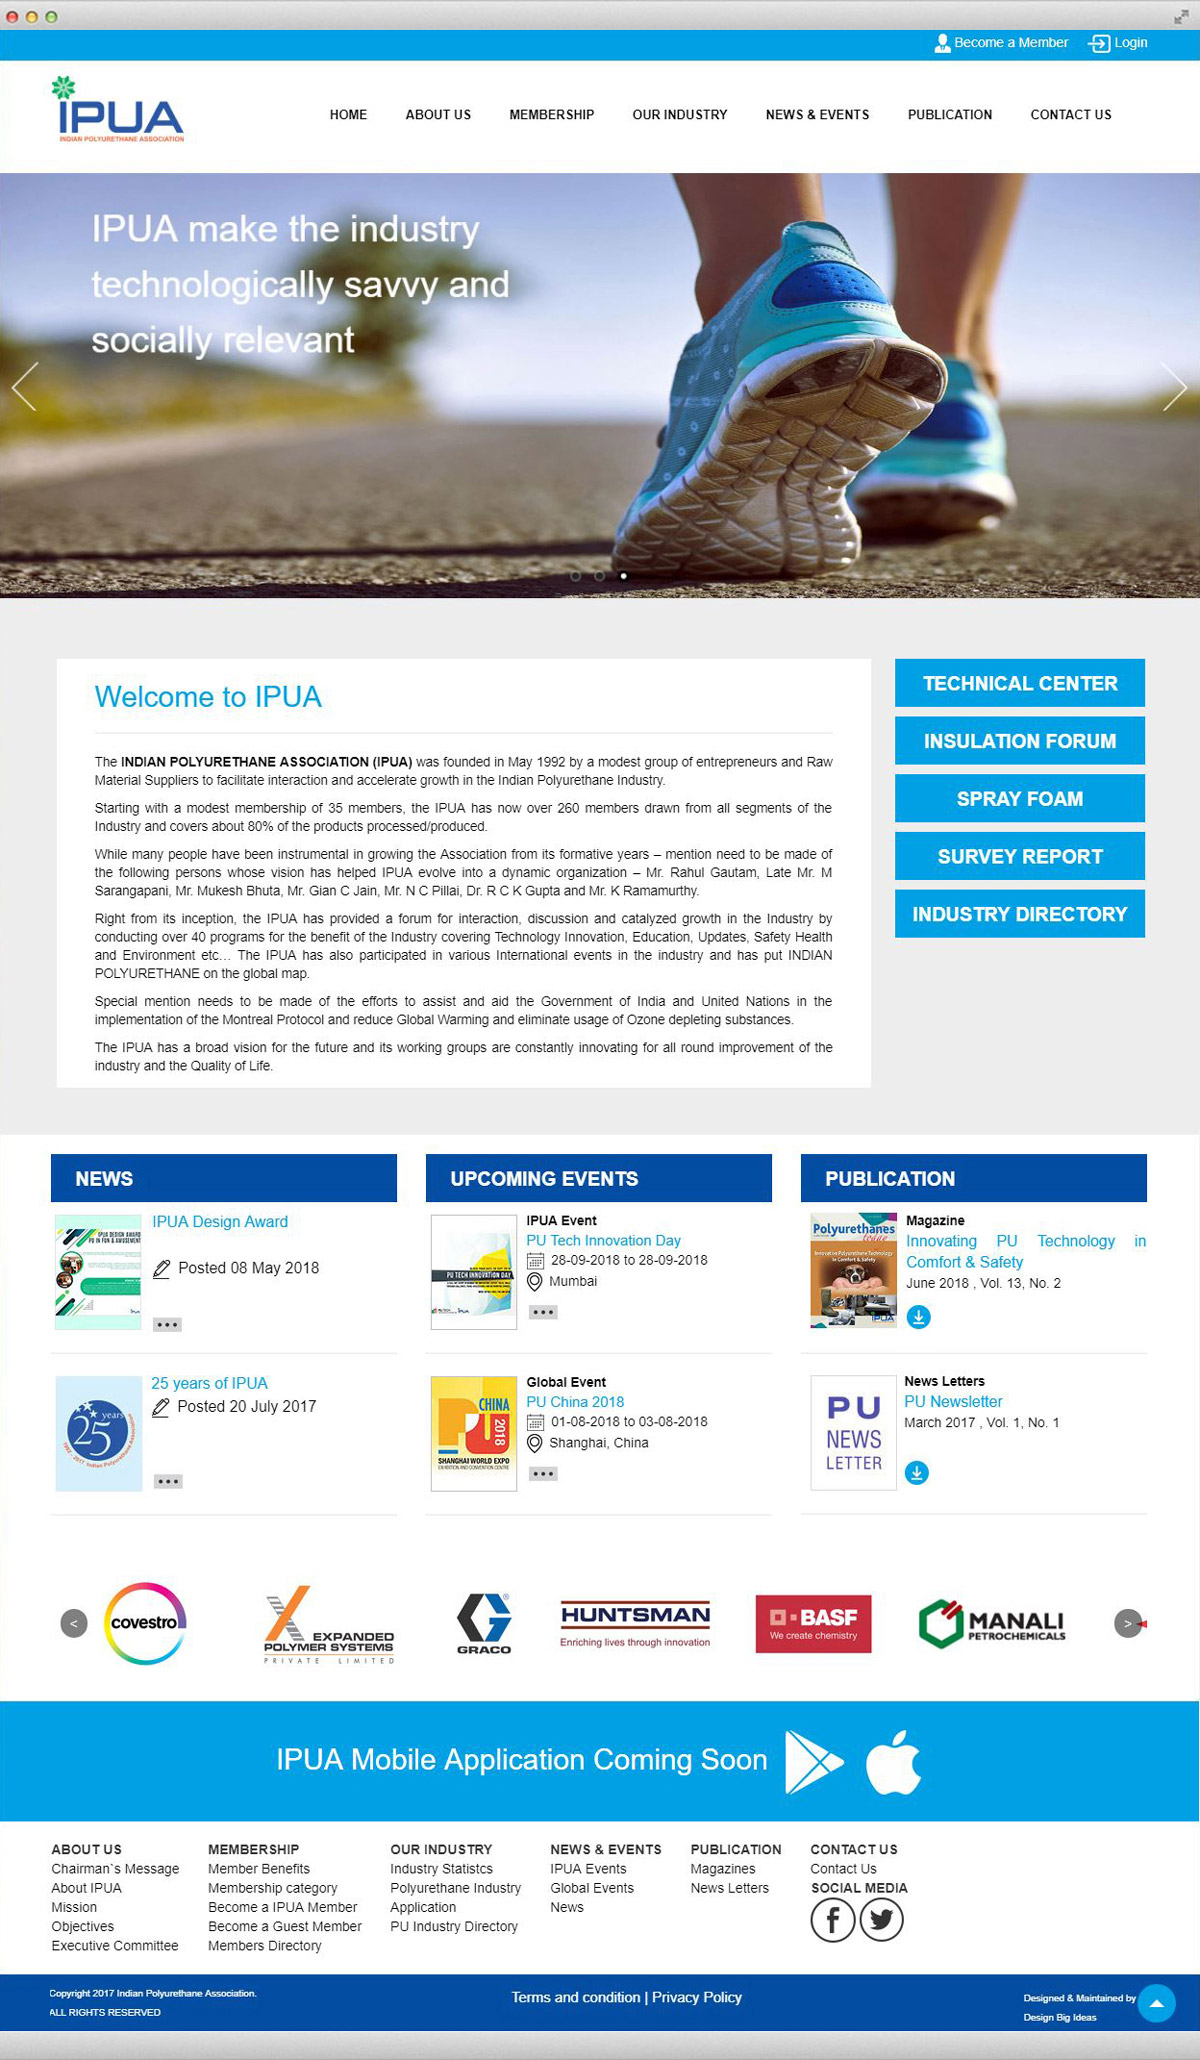 Website Design for IPUA